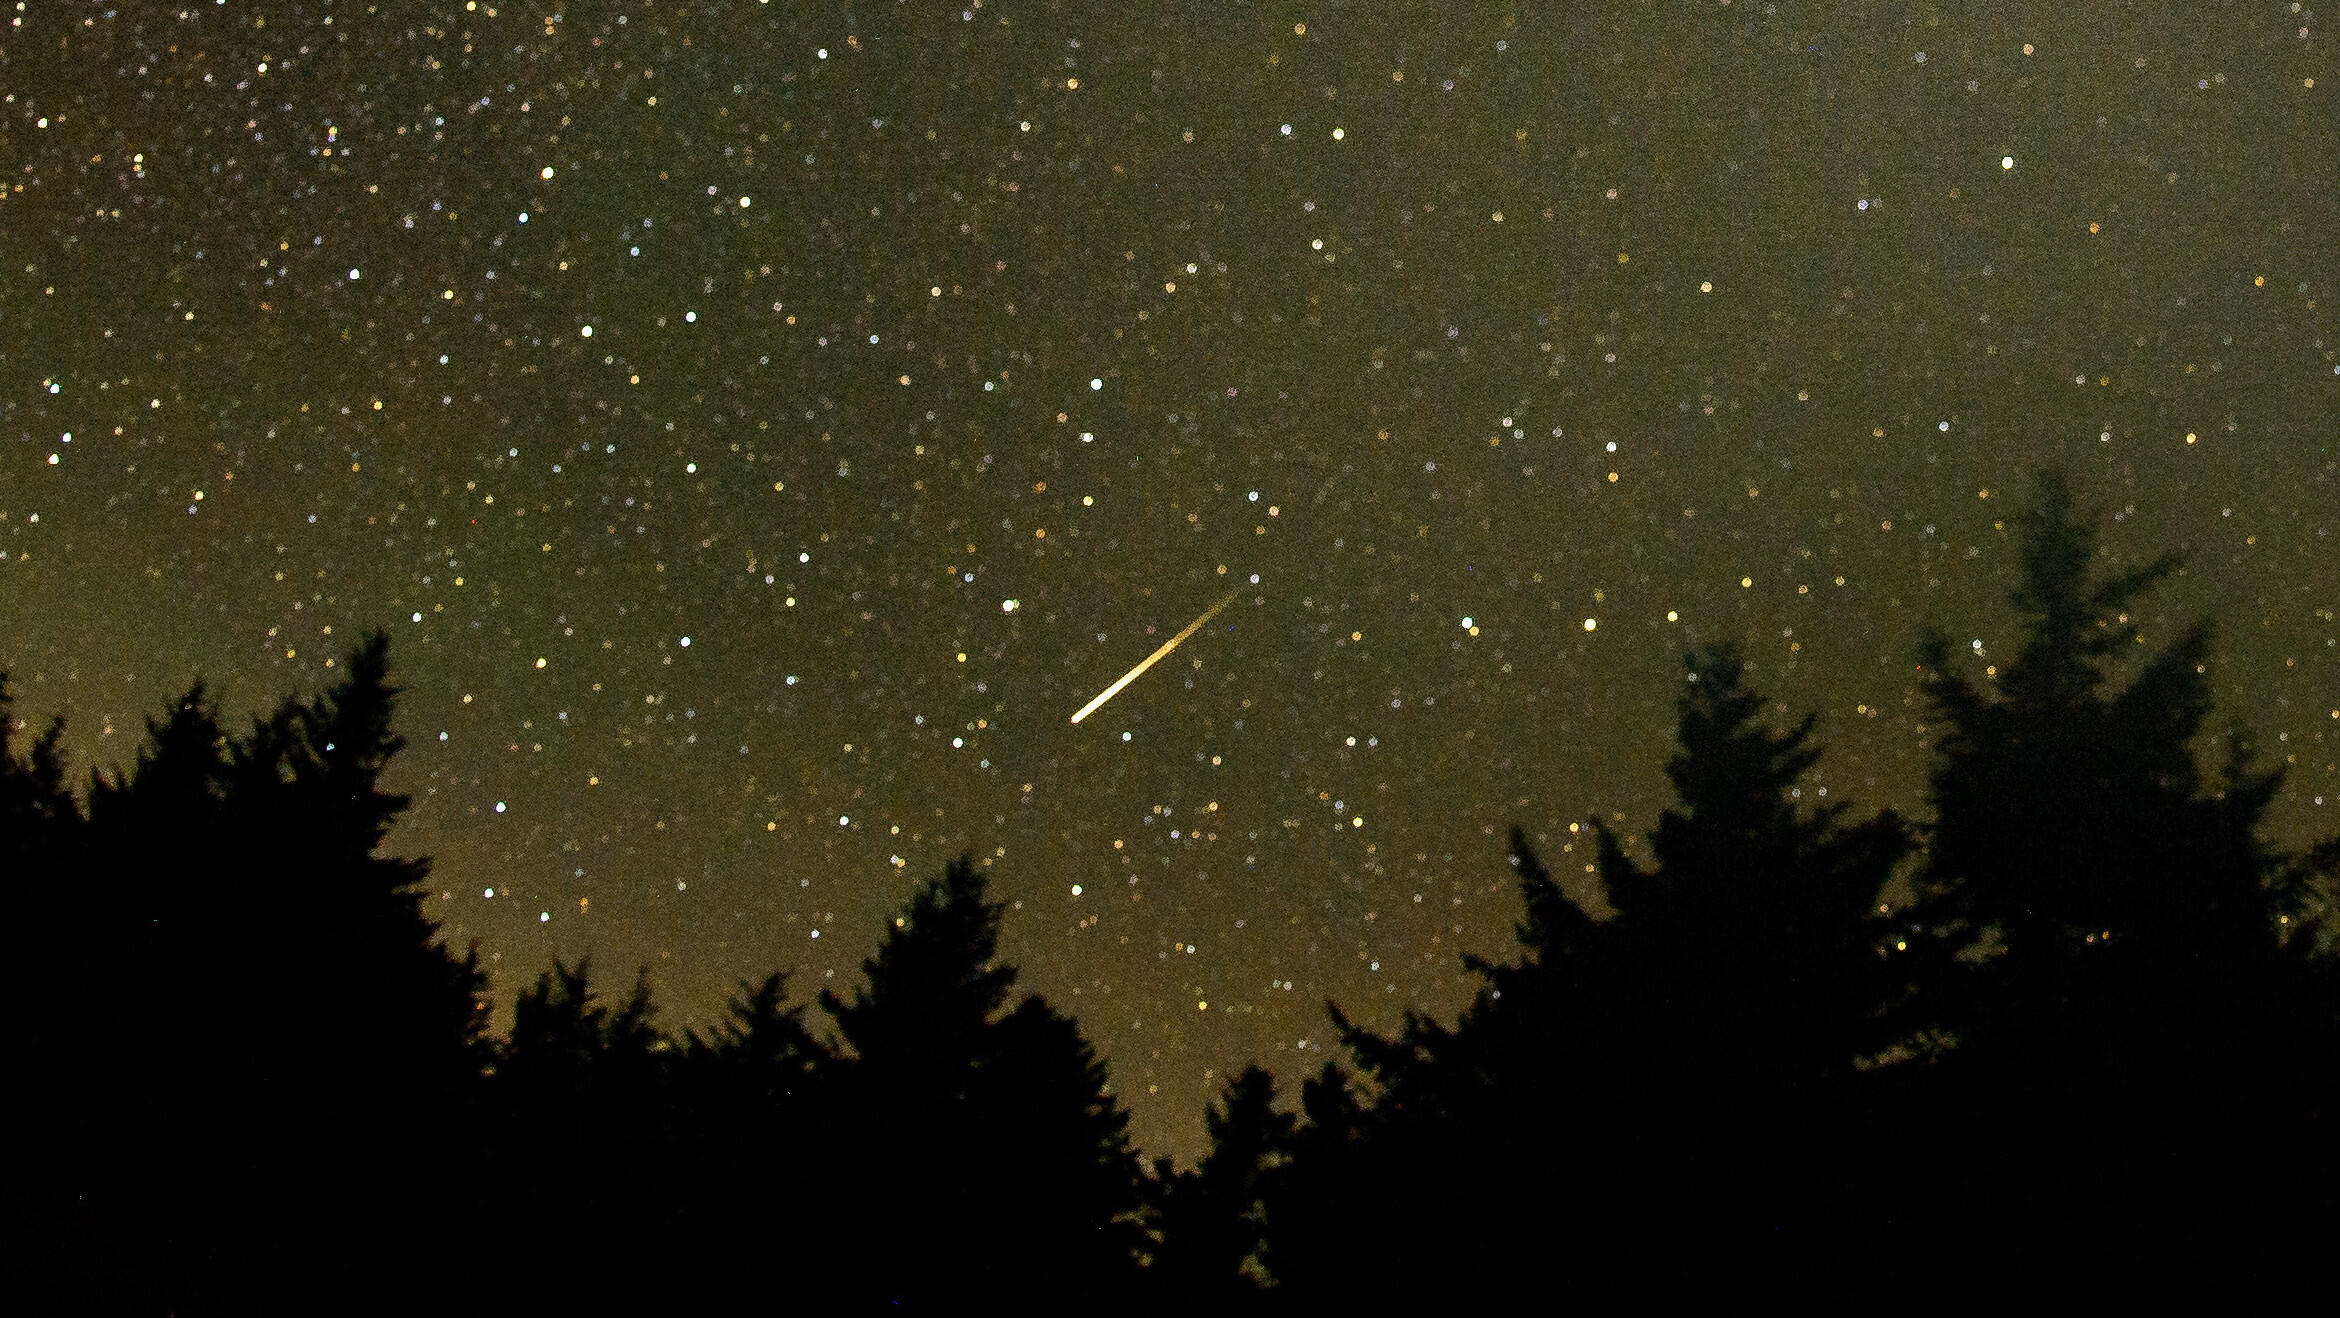 Perseid meteor shower 2021: How to watch the best show of the year     - CNET